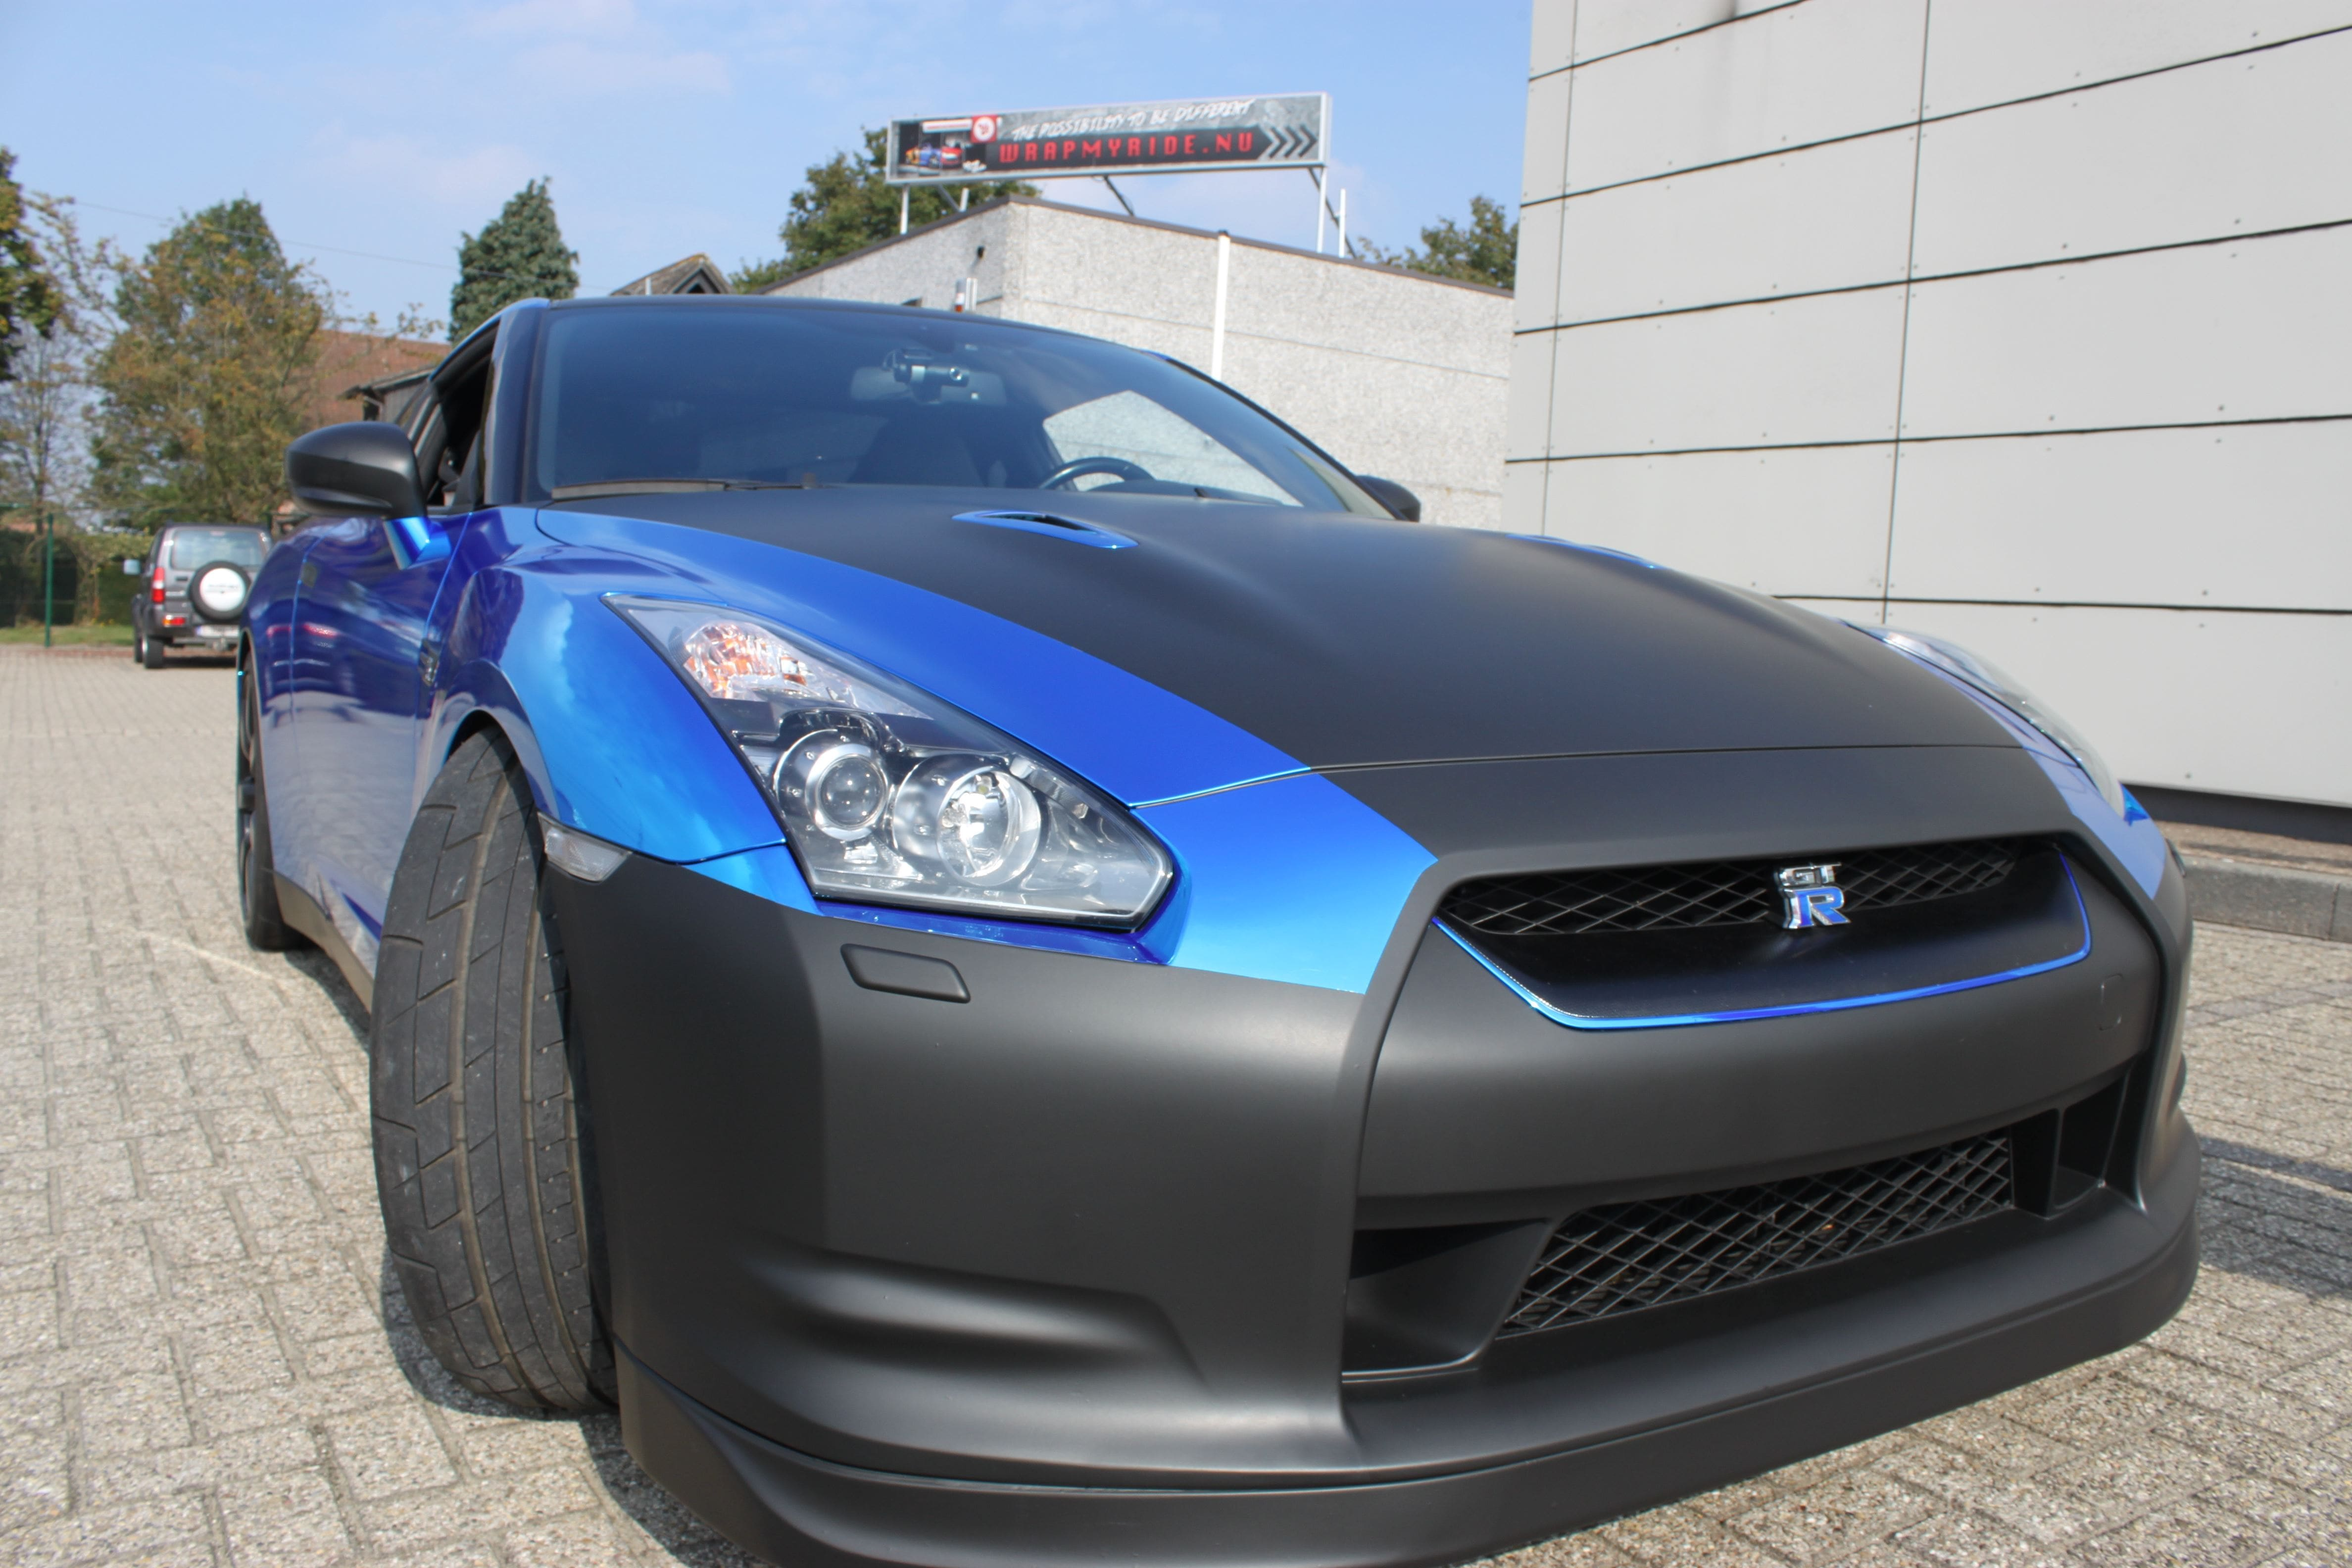 Nissan GT-R met Blue Chrome Wrap, Carwrapping door Wrapmyride.nu Foto-nr:6480, ©2020